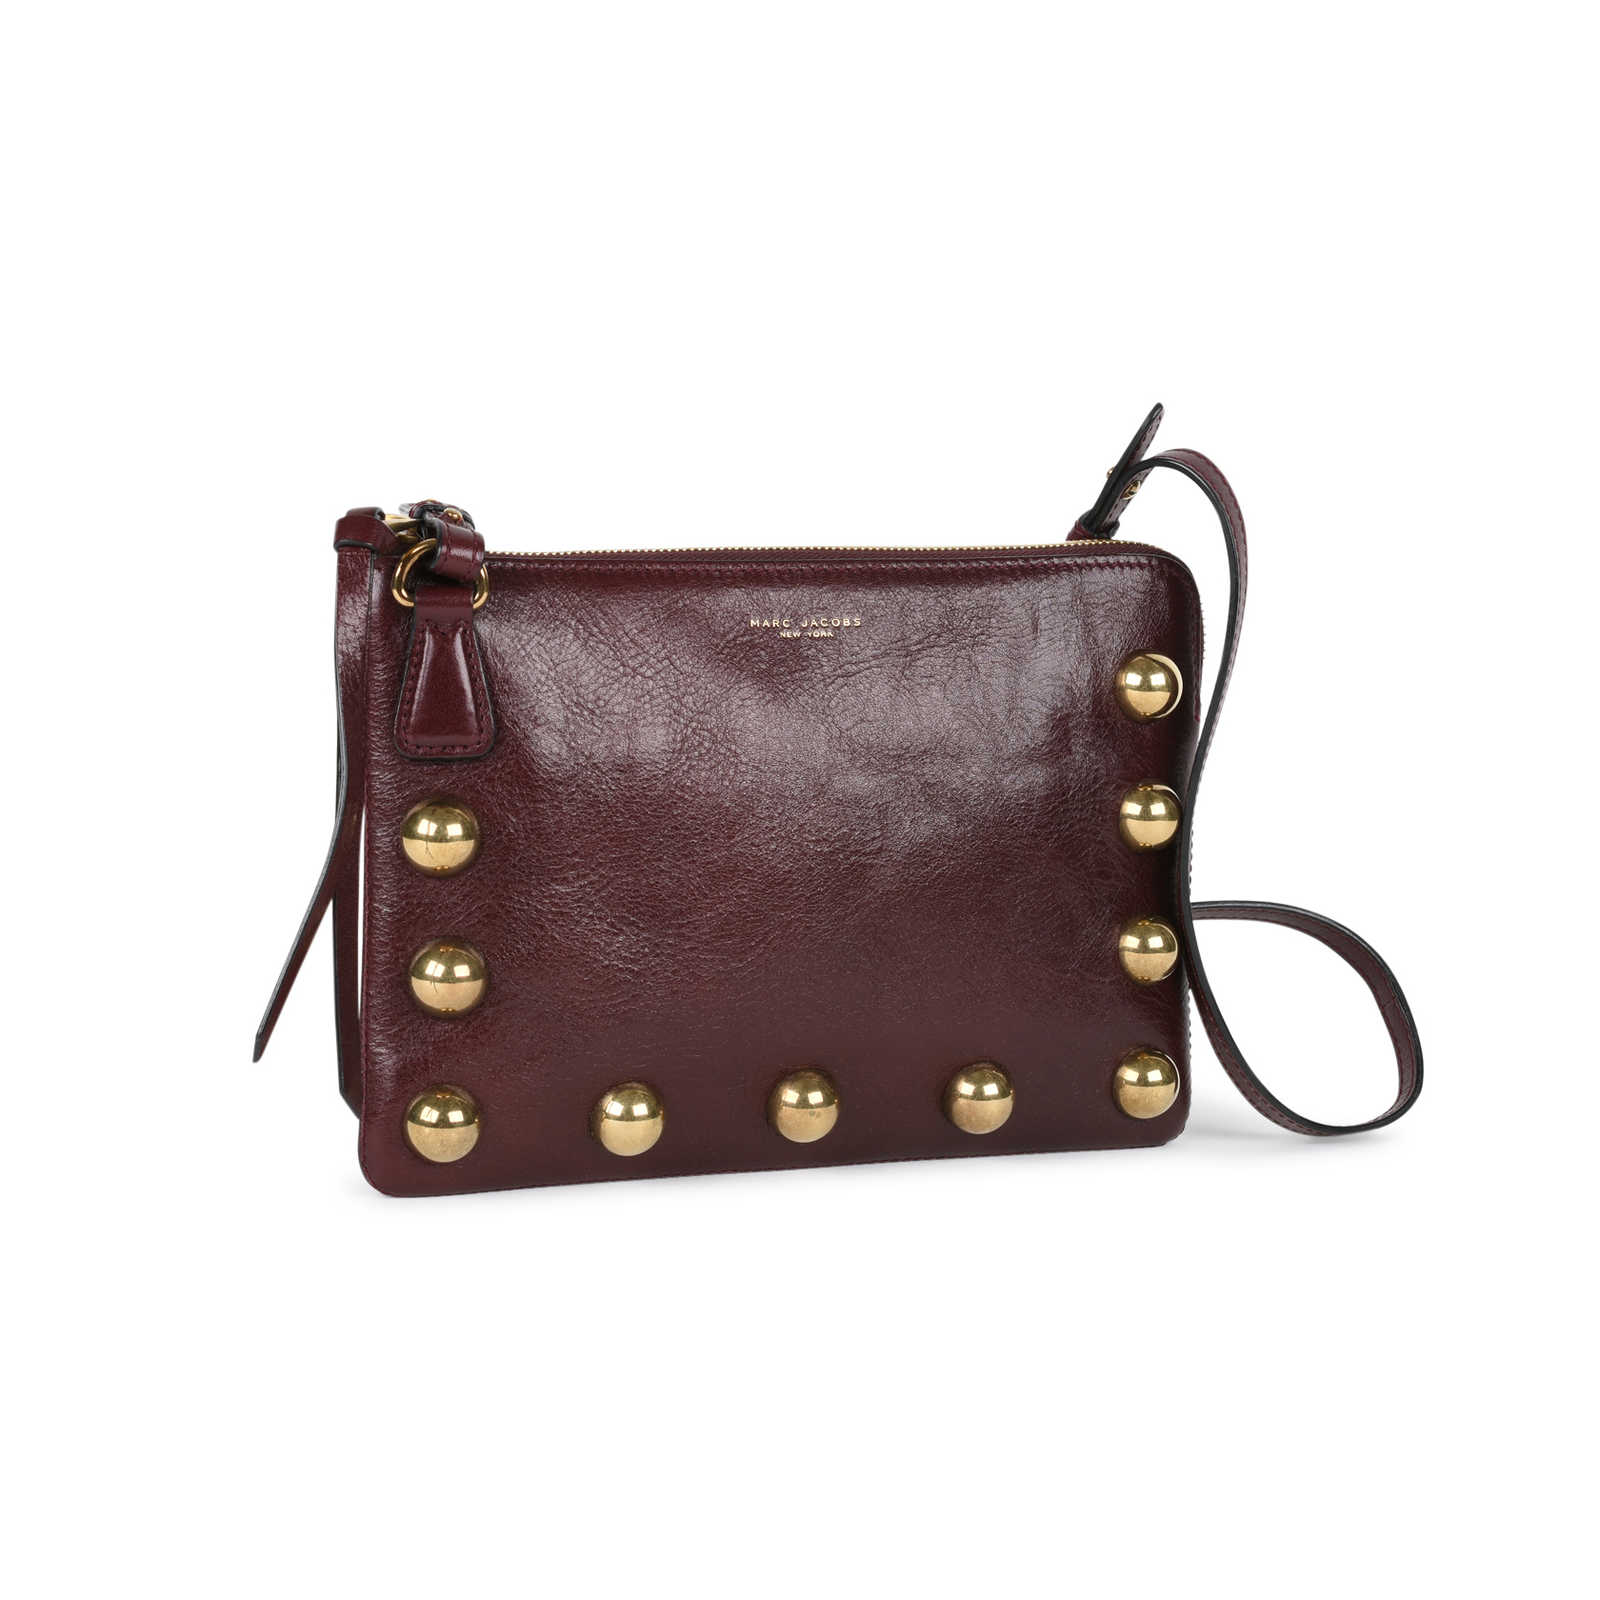 54776cb88d43 ... Authentic Second Hand Marc Jacobs Gold Stud Leather Crossbody Bag  (PSS-543-00001 ...